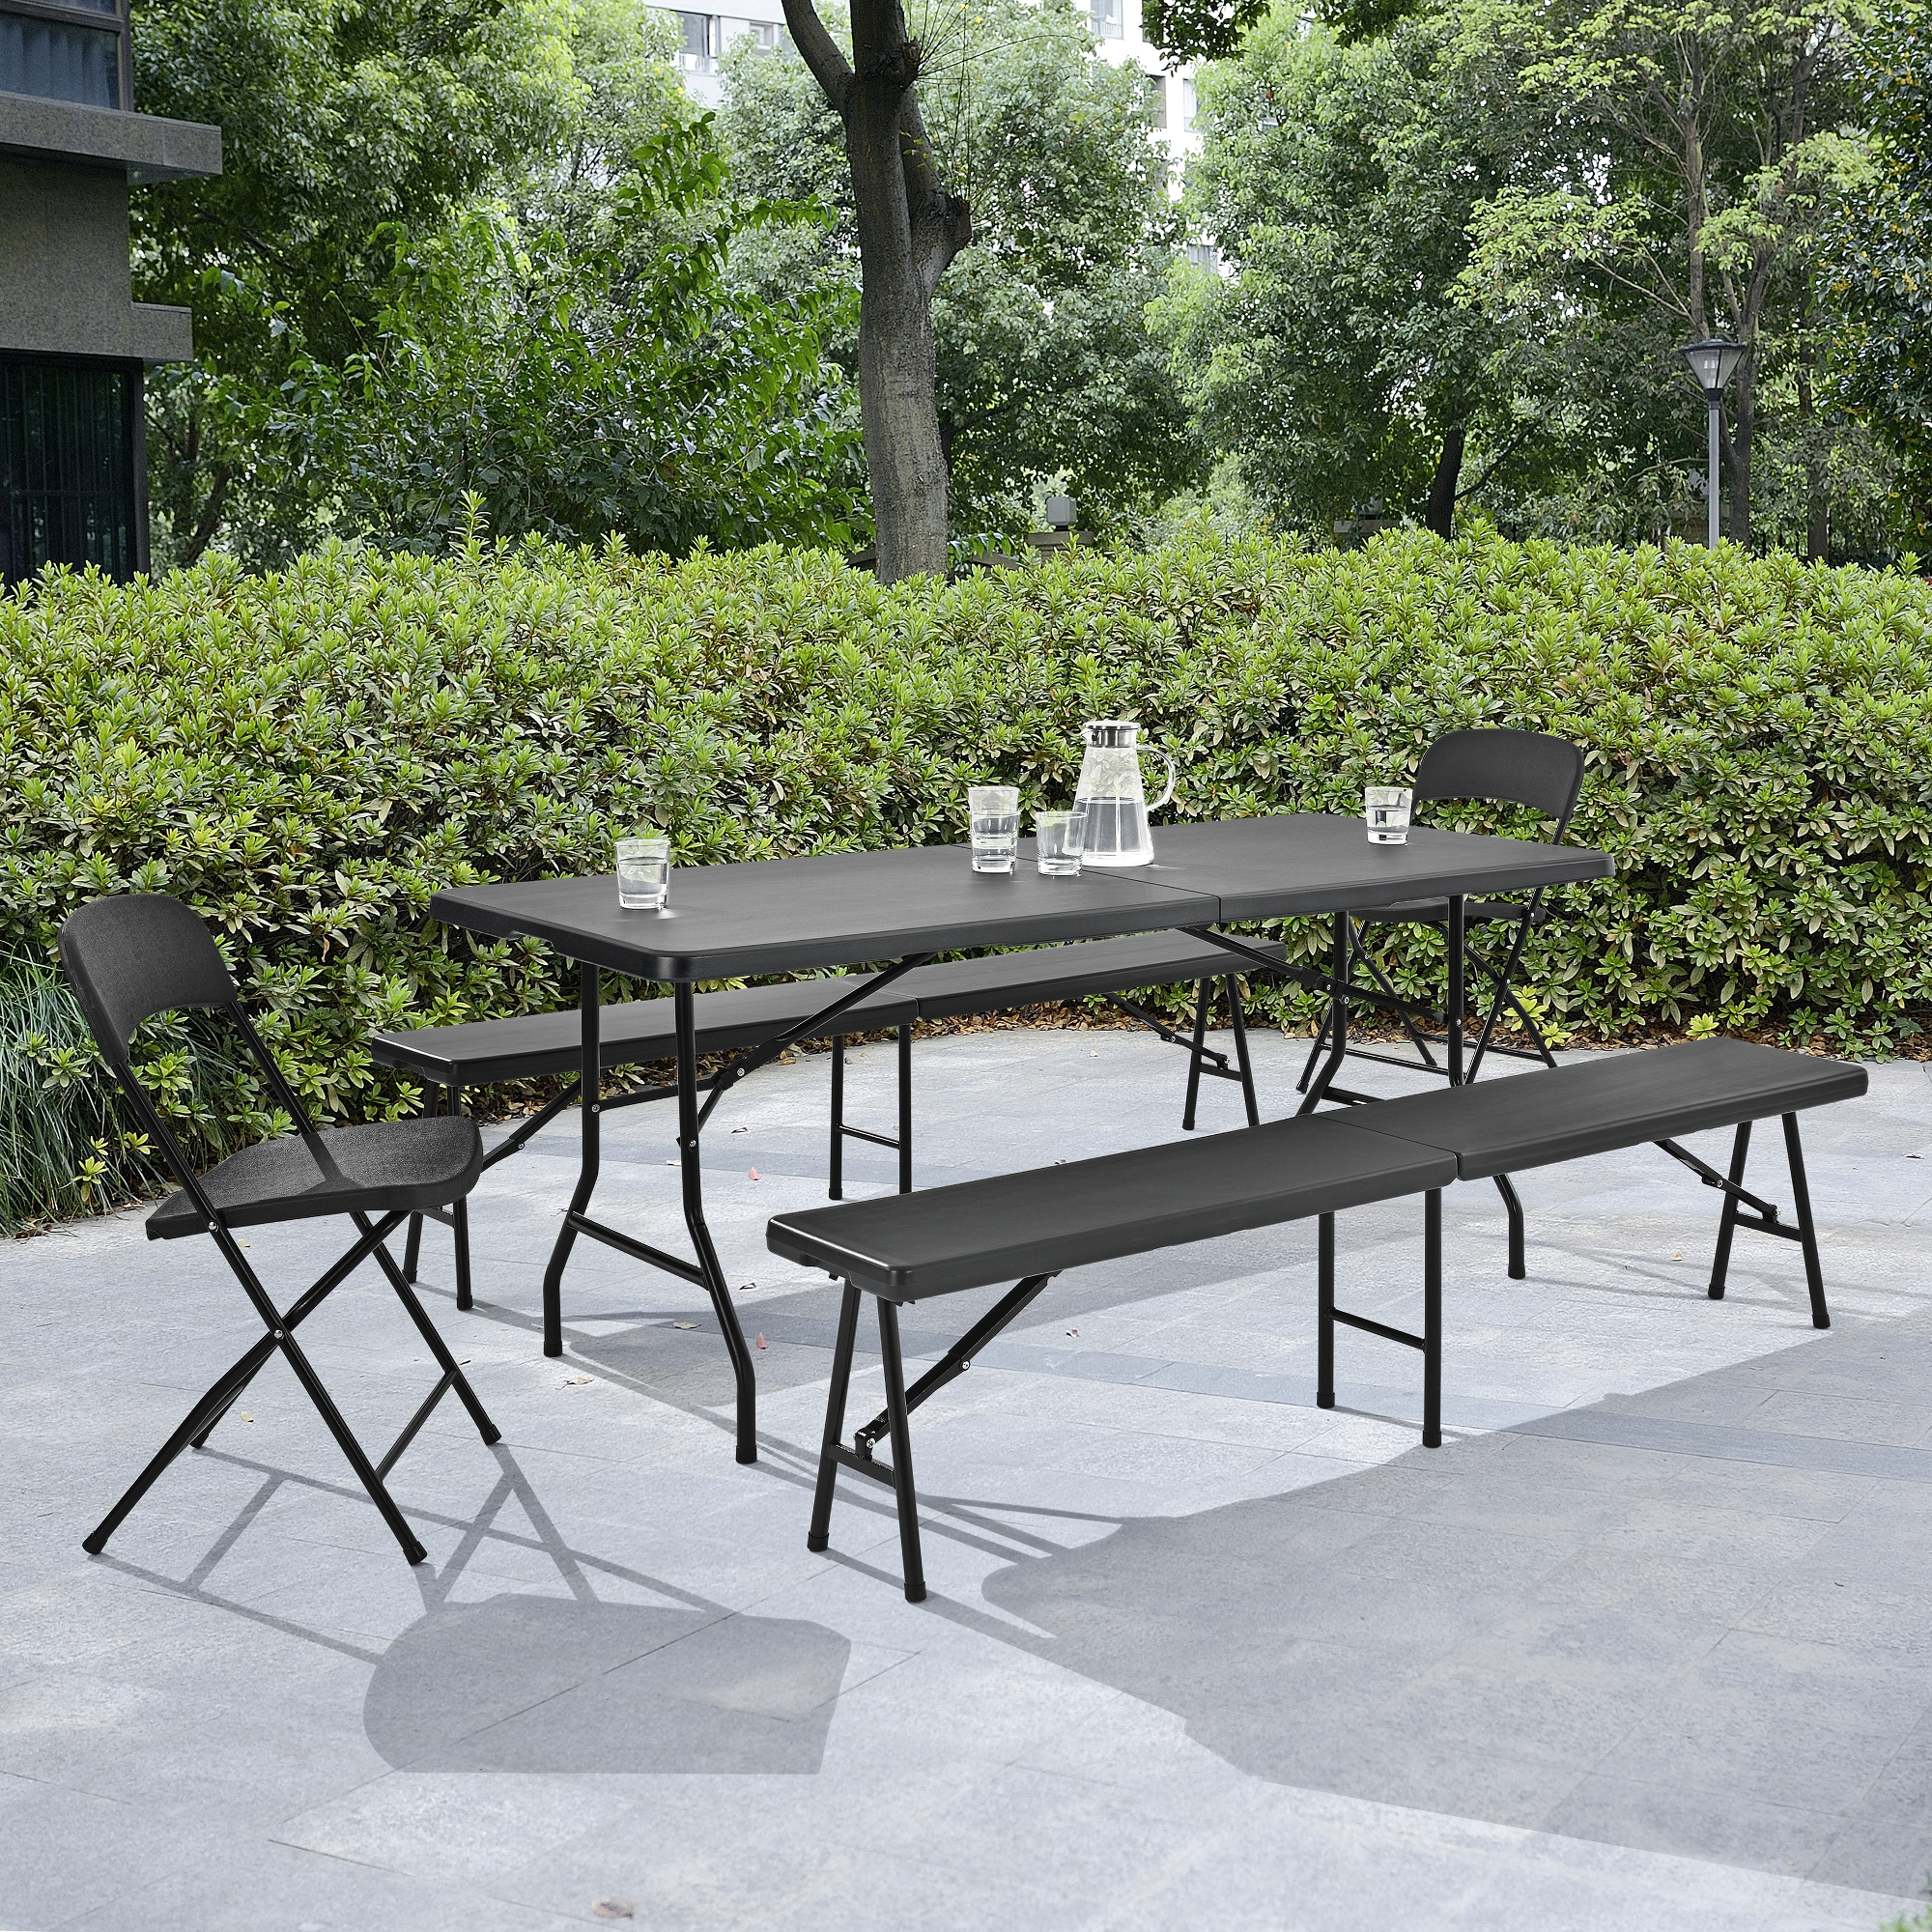 Détails sur Table Pliante Table de Buffet Gris 183x76cm à Manger Jardin  Camping Table